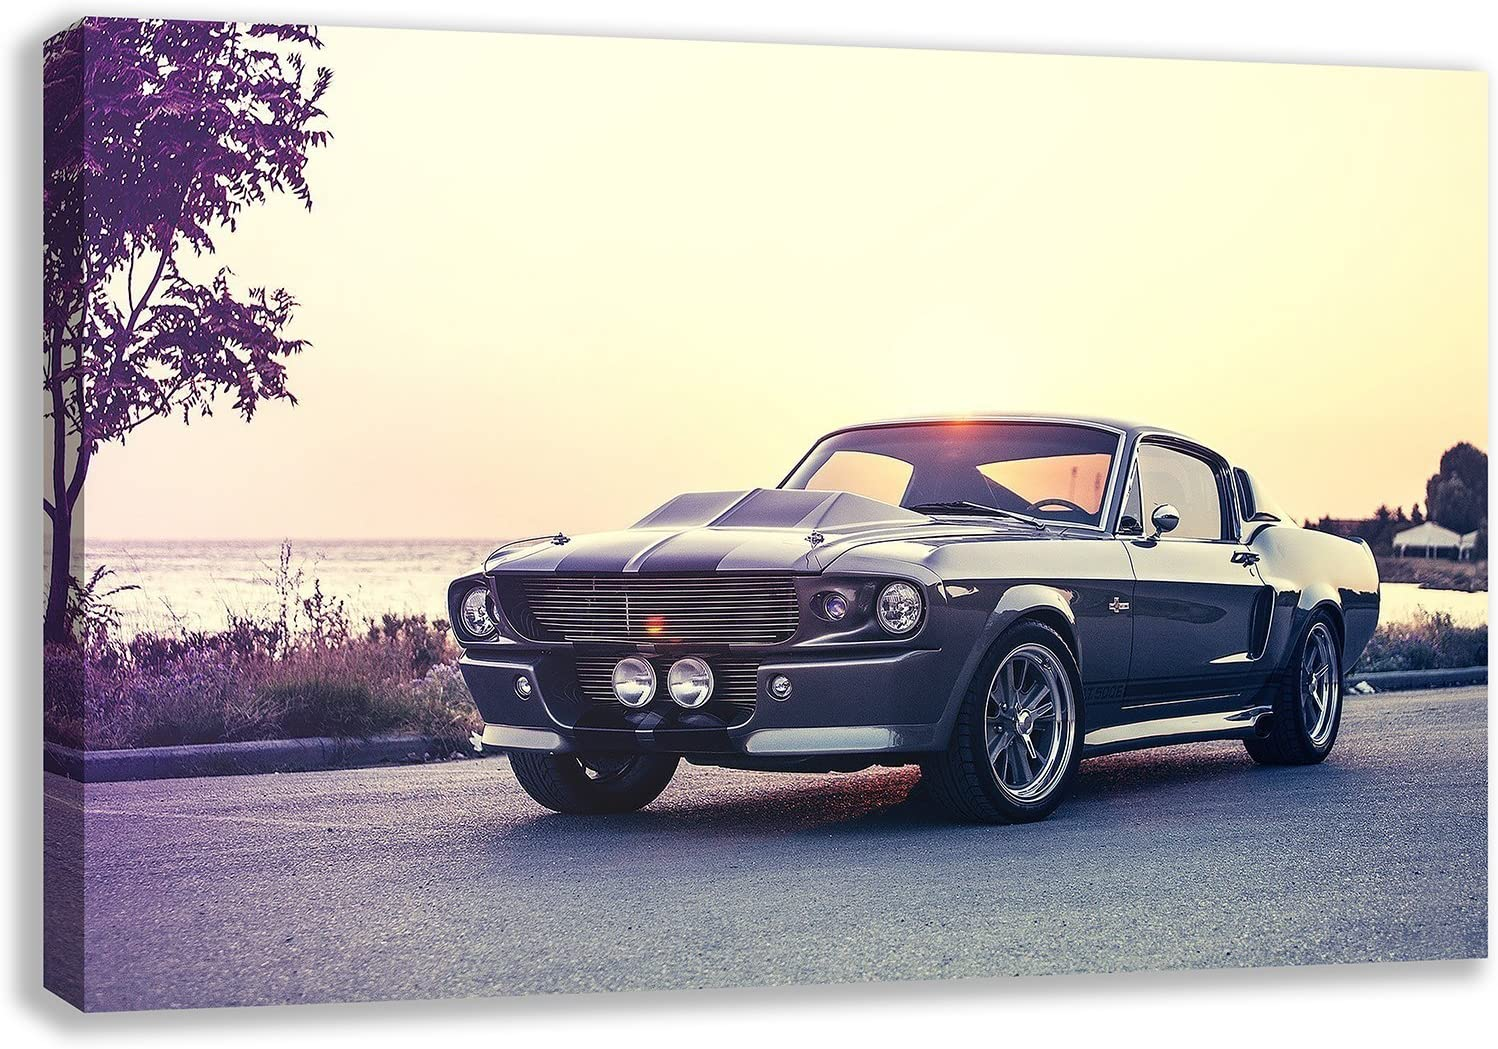 OVER 1 METER WIDE Poster! 4 Ford Mustang Shelby Cobra 1967 GT500 Eleanor